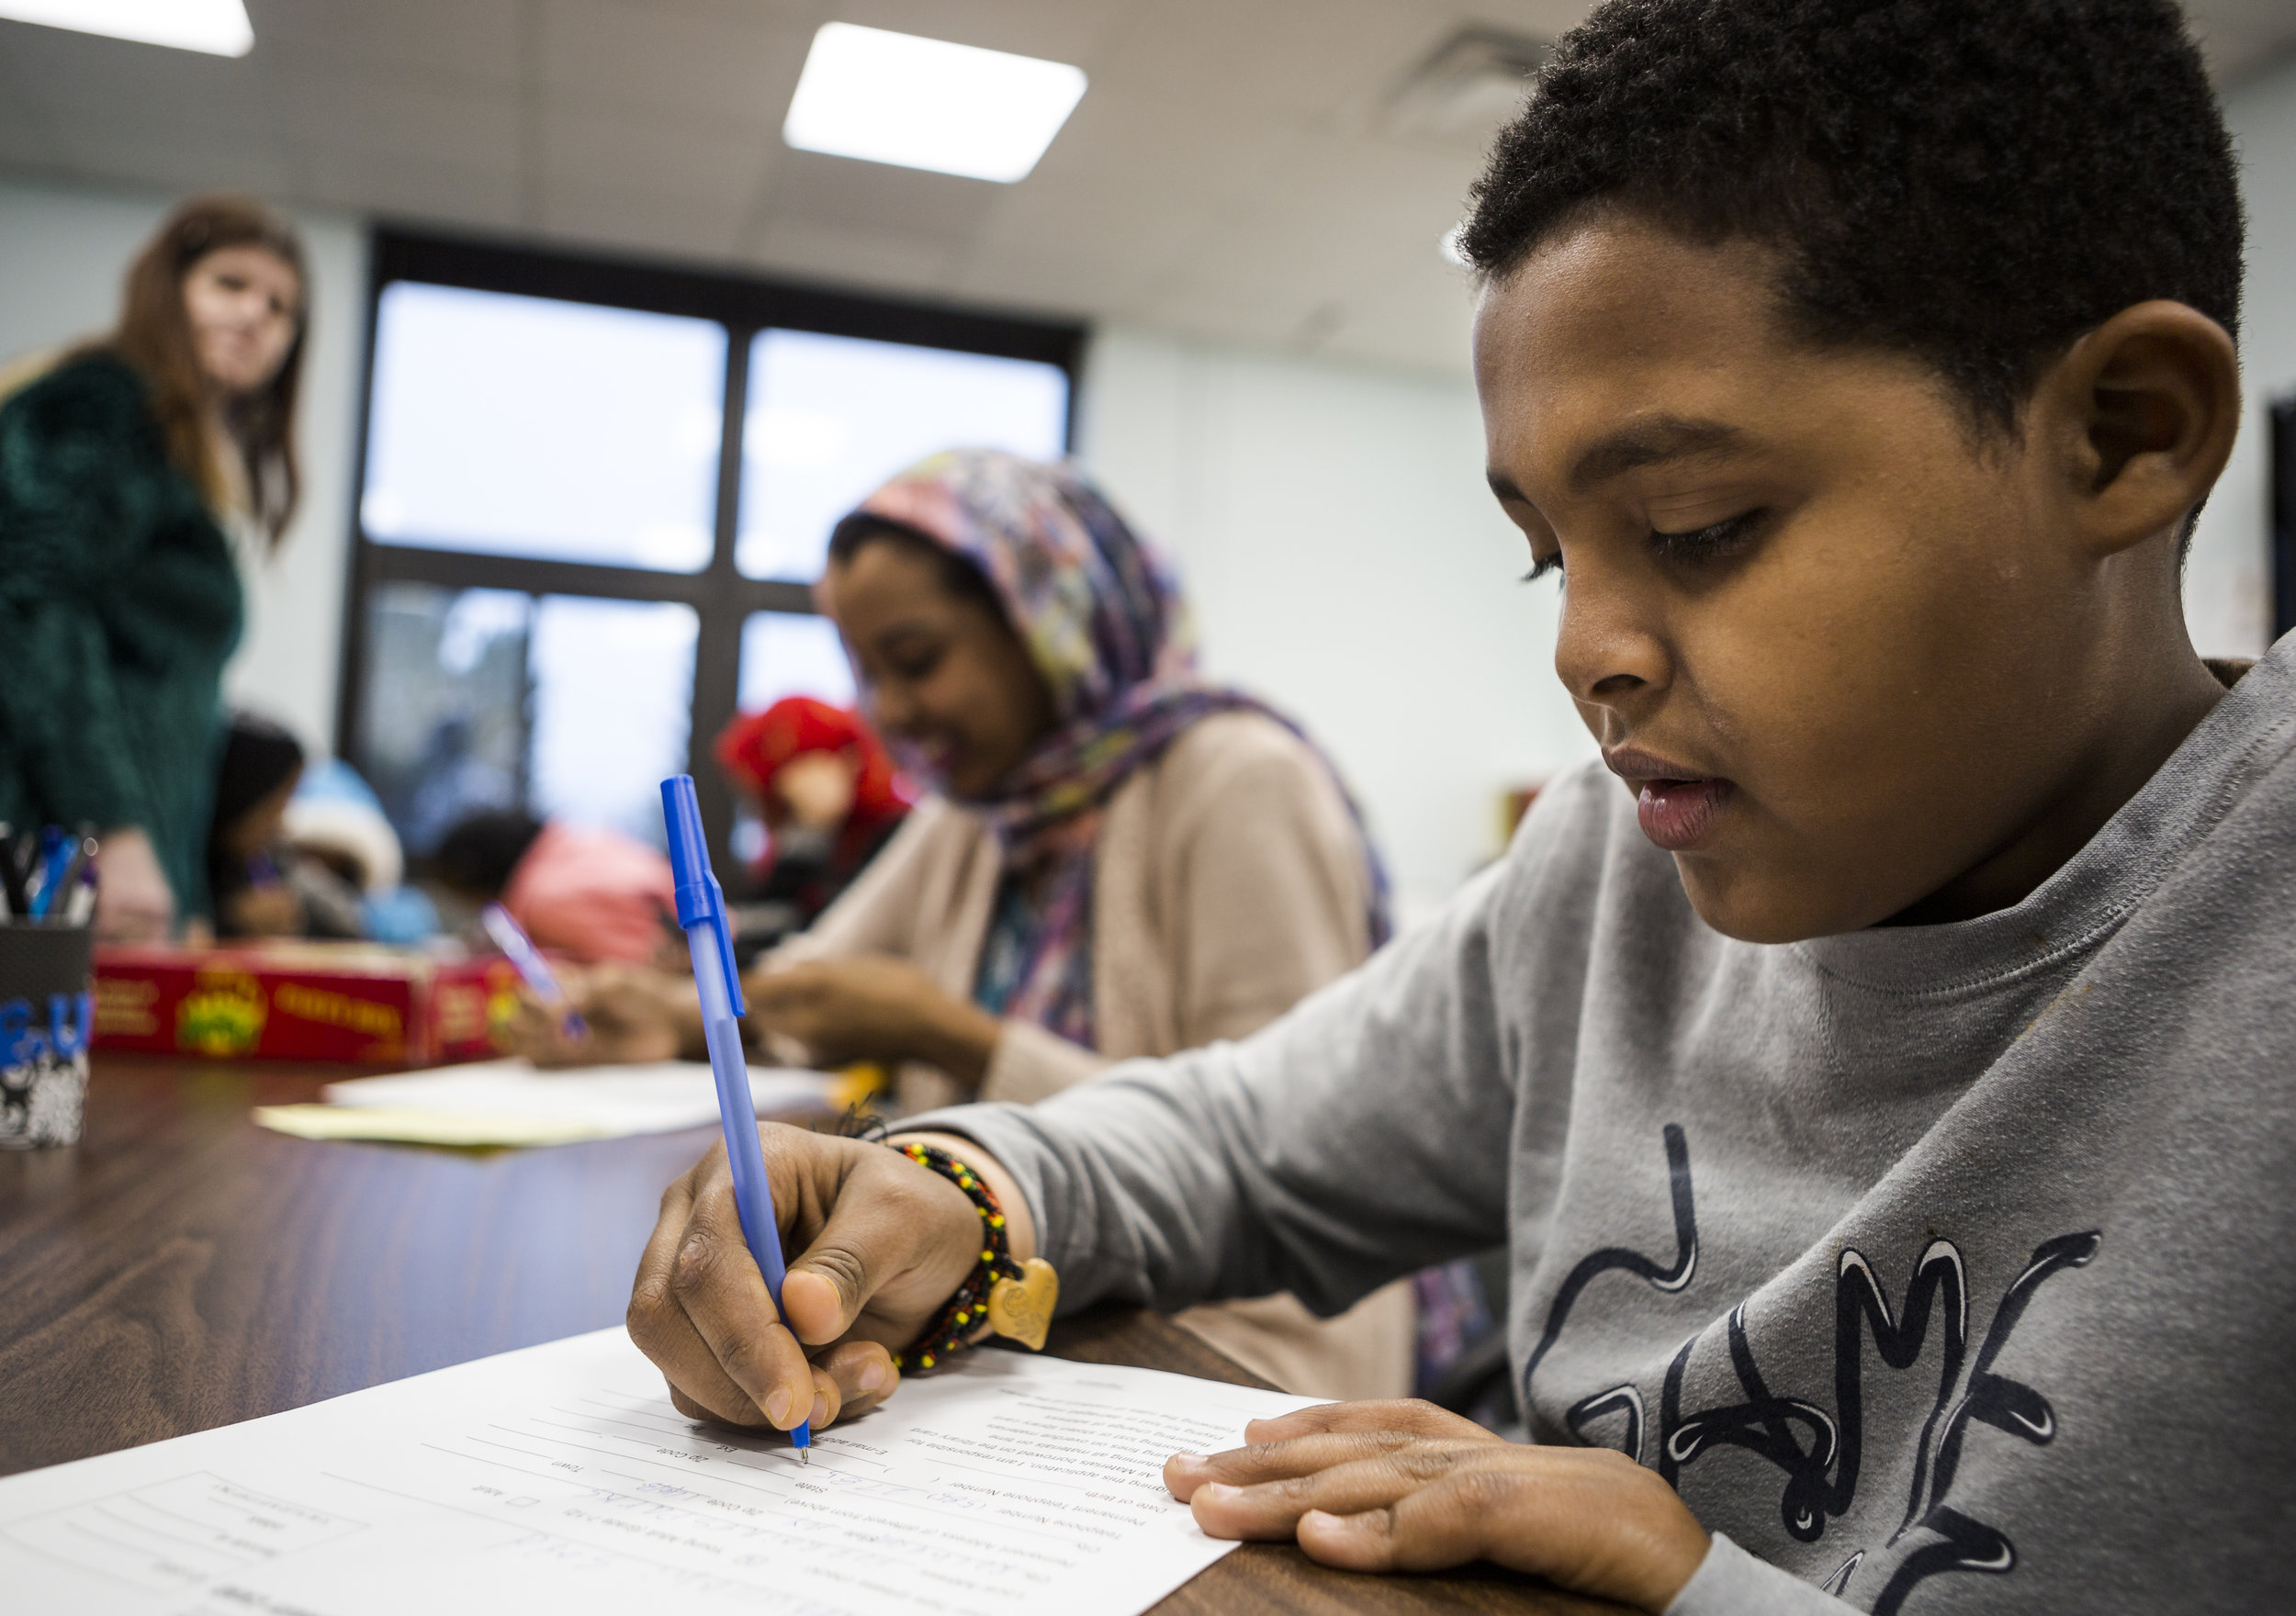 At the local library, Abdullahi and his sisters fill out forms at the Maplewood Community Library for the first time. Abdullahi's exact birthday is unknown to him or his family, so his sisters decided January 1st would be his birthday recorded on the form. The children will also be able to take advantage of homework-help and tutoring sessions at the library which is roughly a fifteen-minute walk from their home. Dec 2, 2016